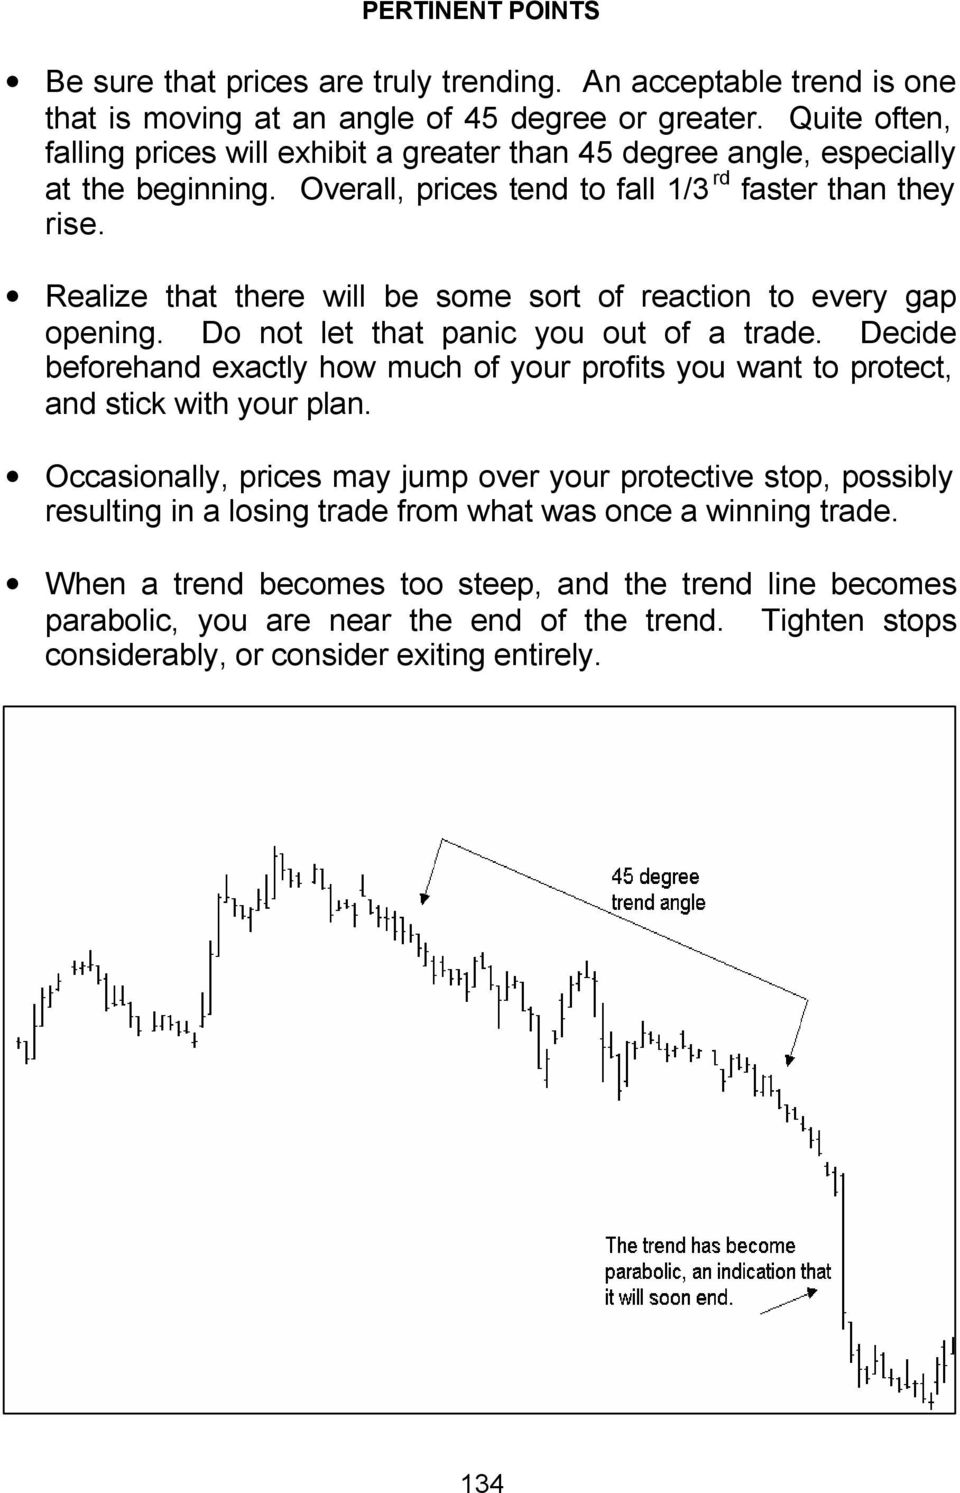 Realize that there will be some sort of reaction to every gap opening. Do not let that panic you out of a trade.